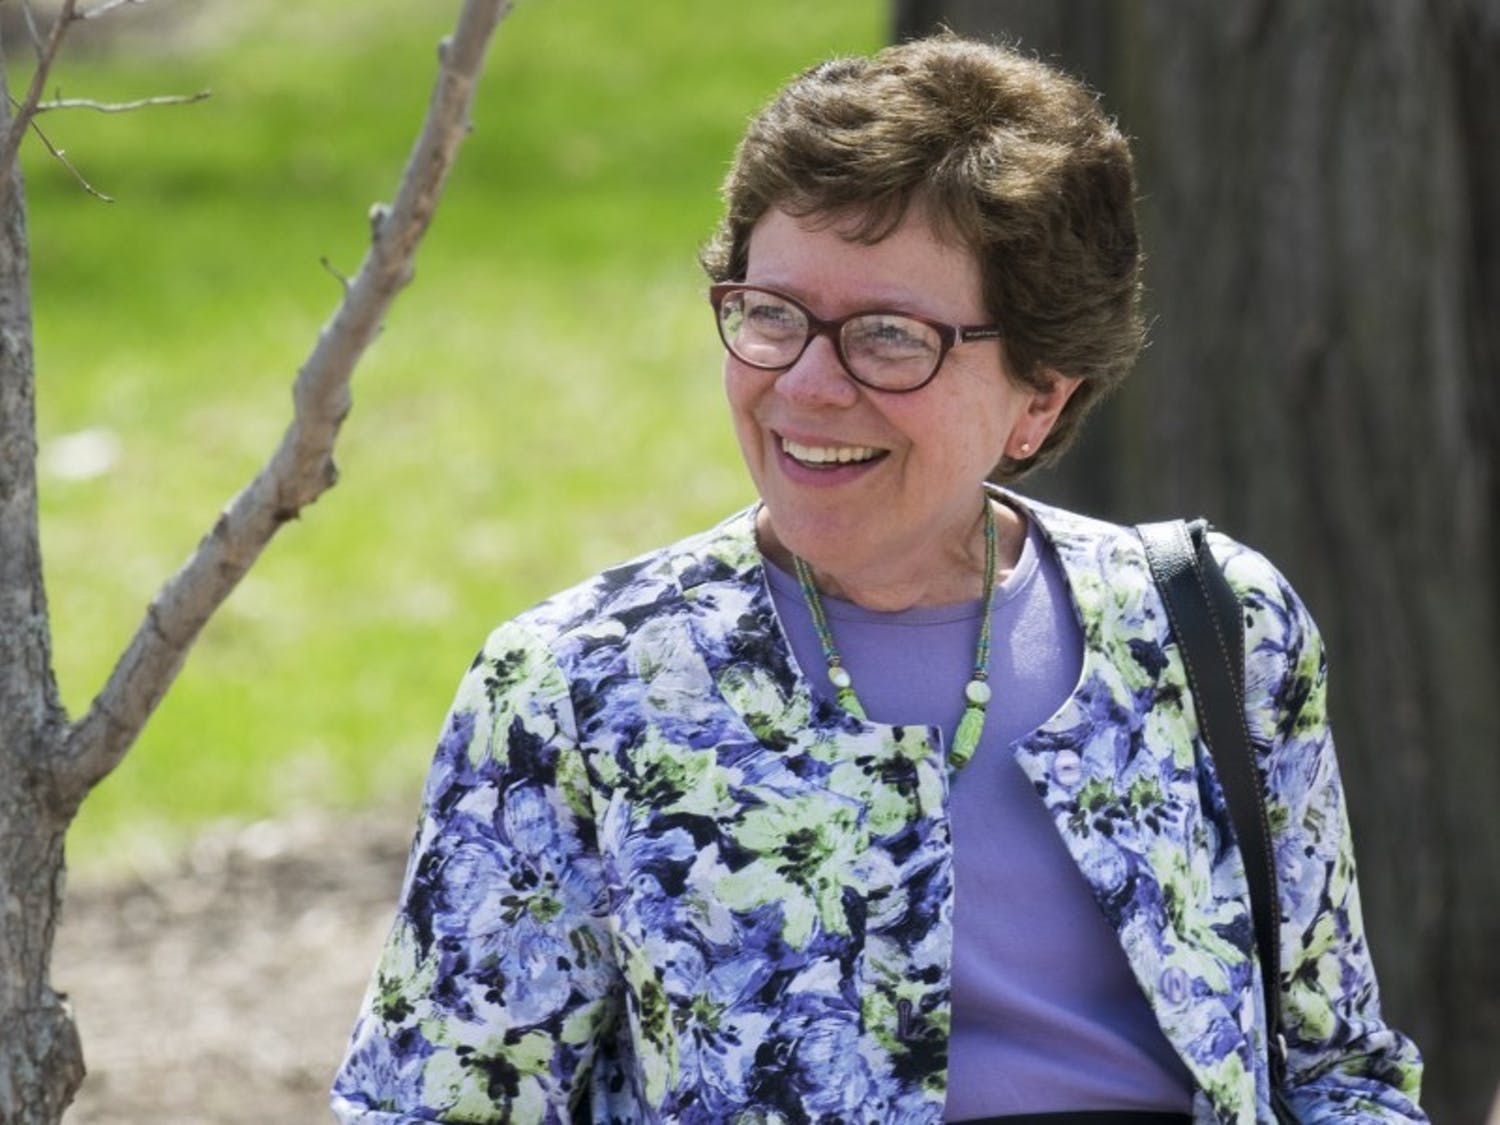 Chancellor Rebecca Blank will announce a proposal that would give first-generation transfer students free tuition for at least one year.